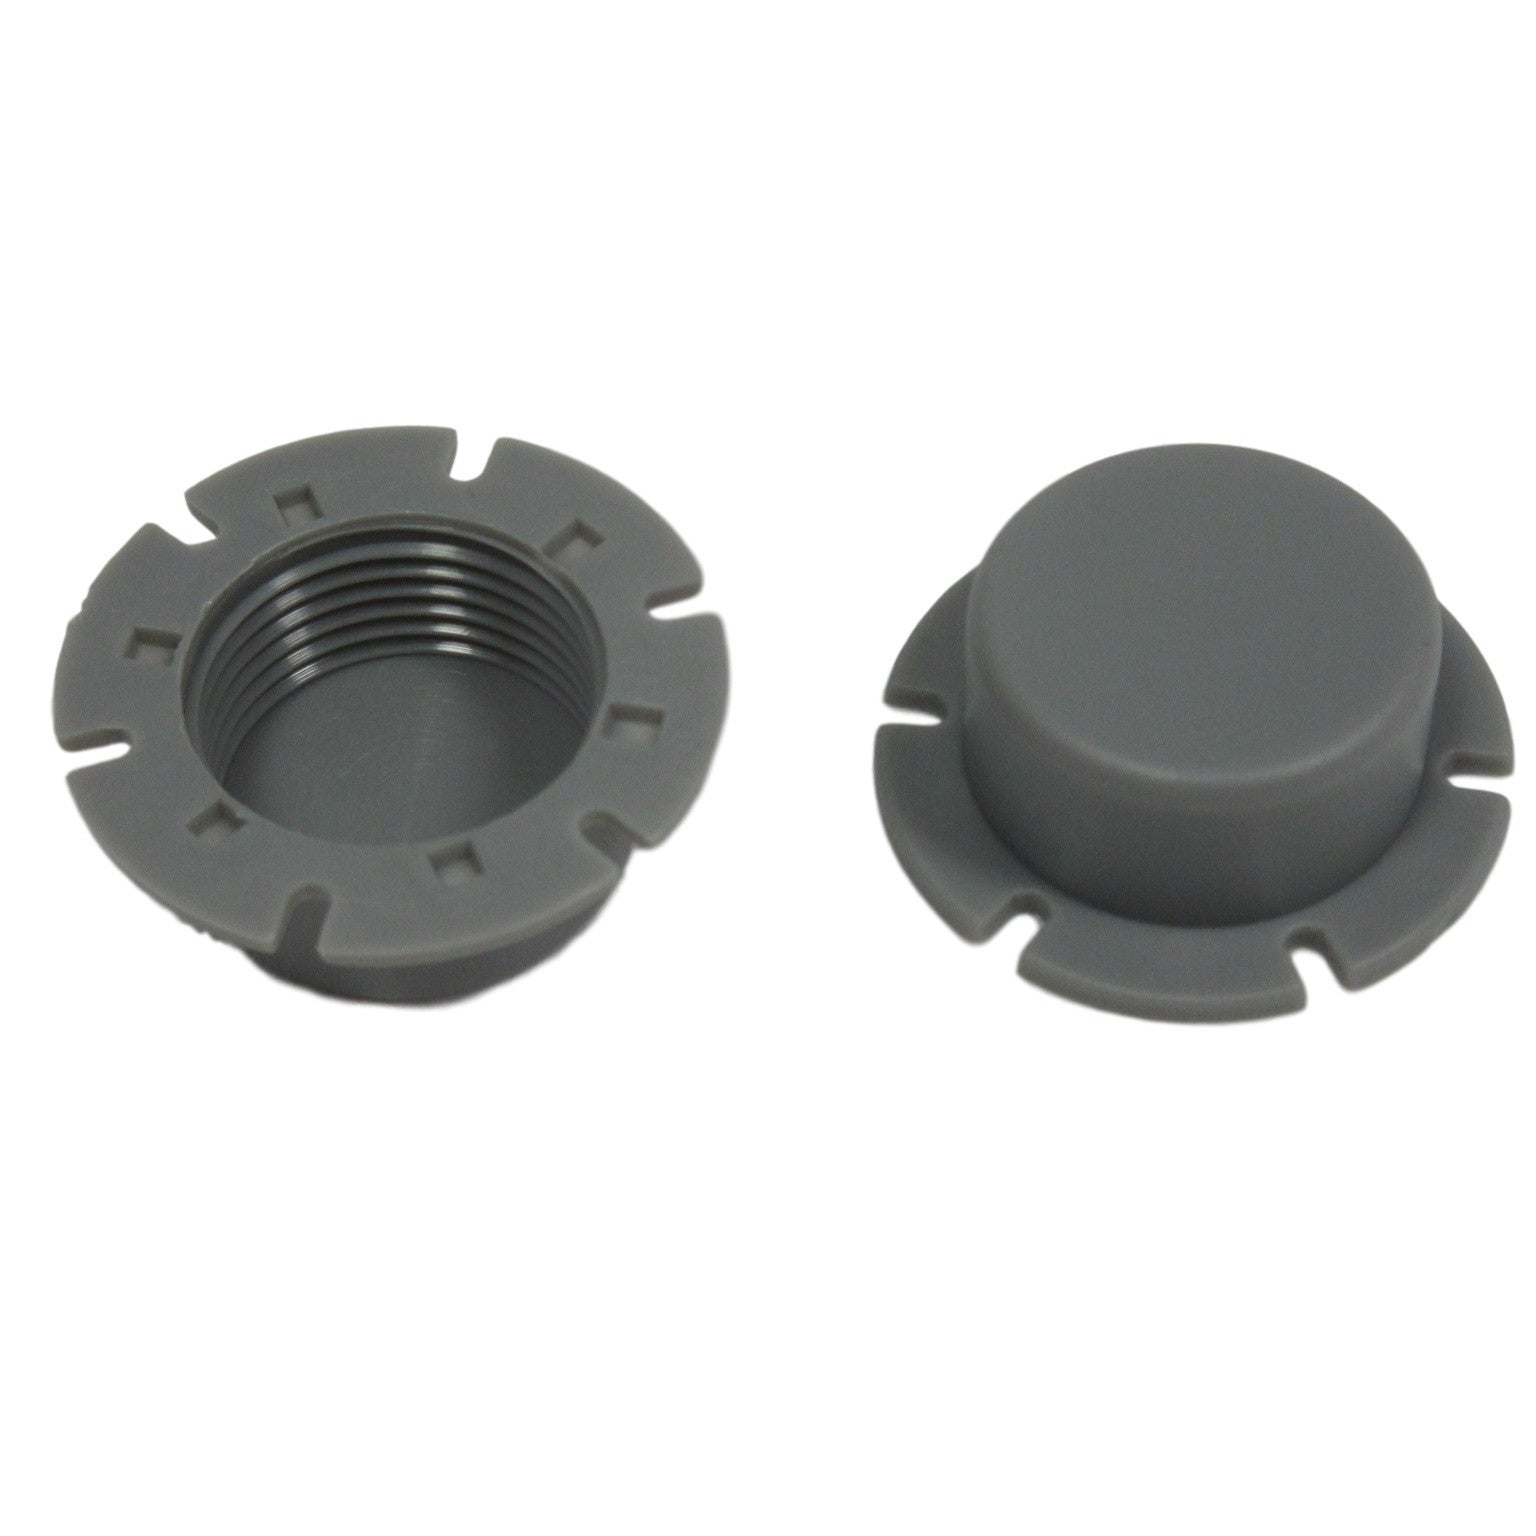 Replacement Handle Fasteners Pair